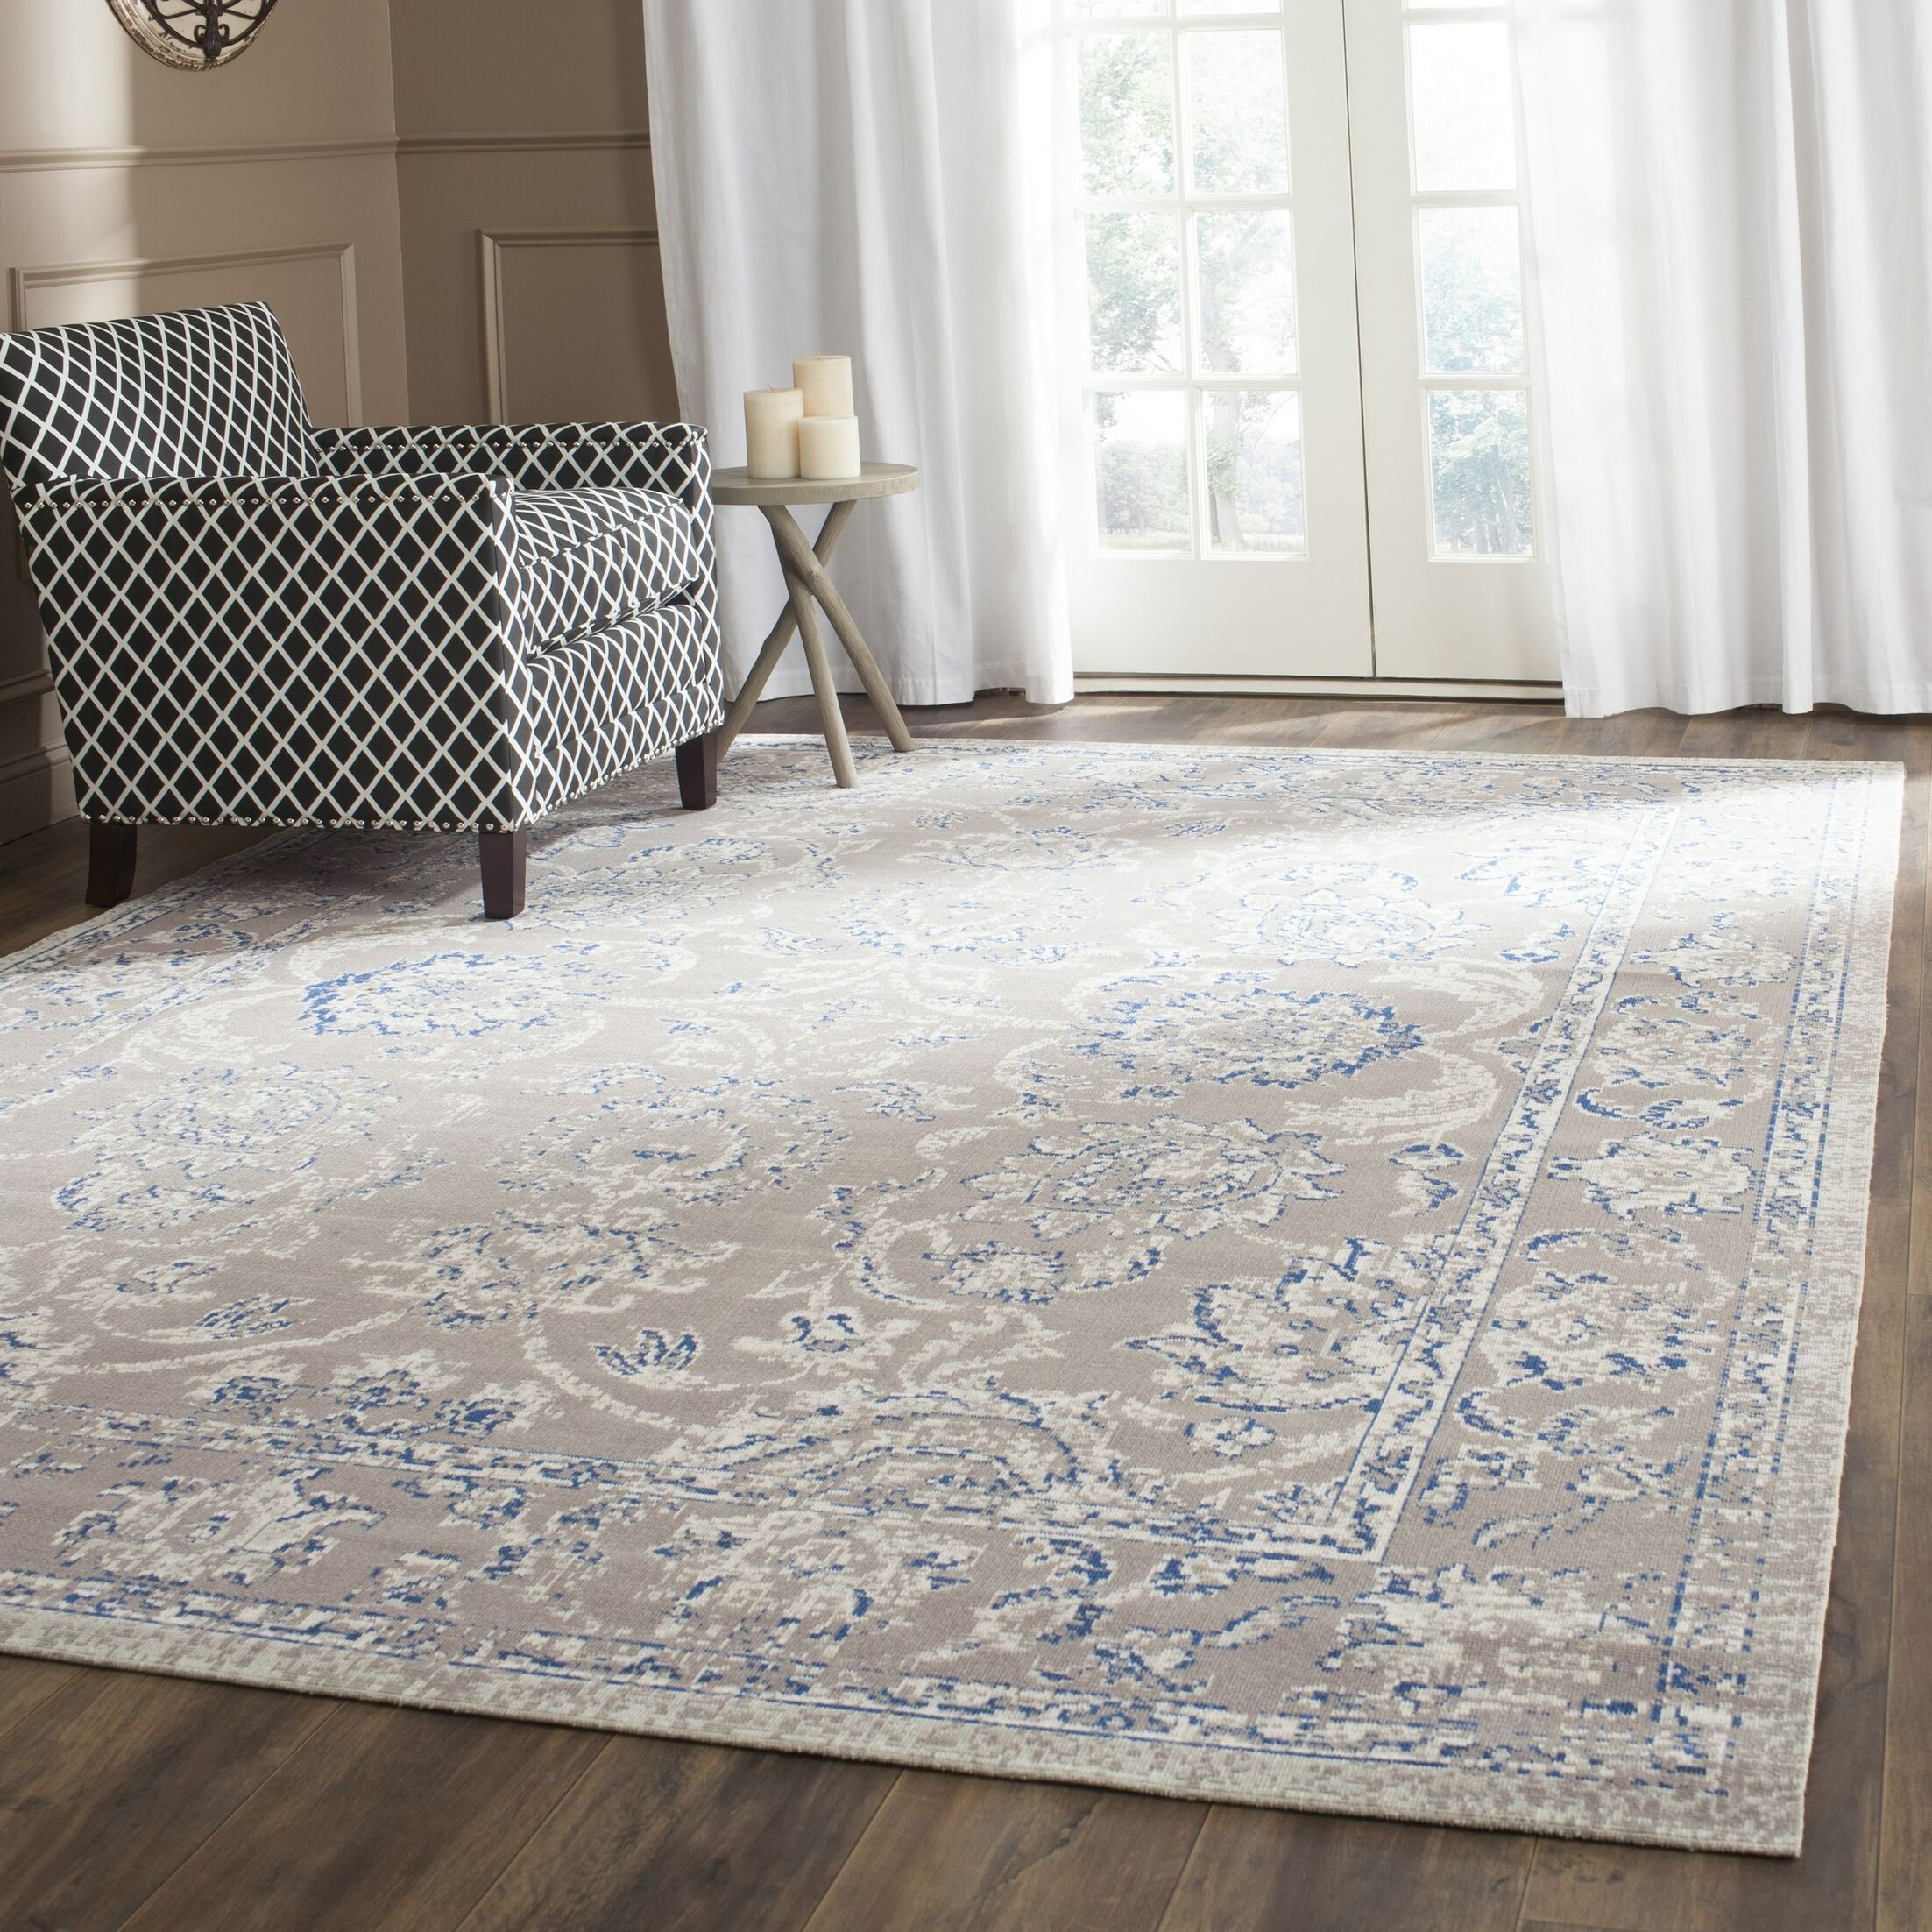 Nielsen Taupe / Blue Area Rug Rug Size: Rectangle 6'7